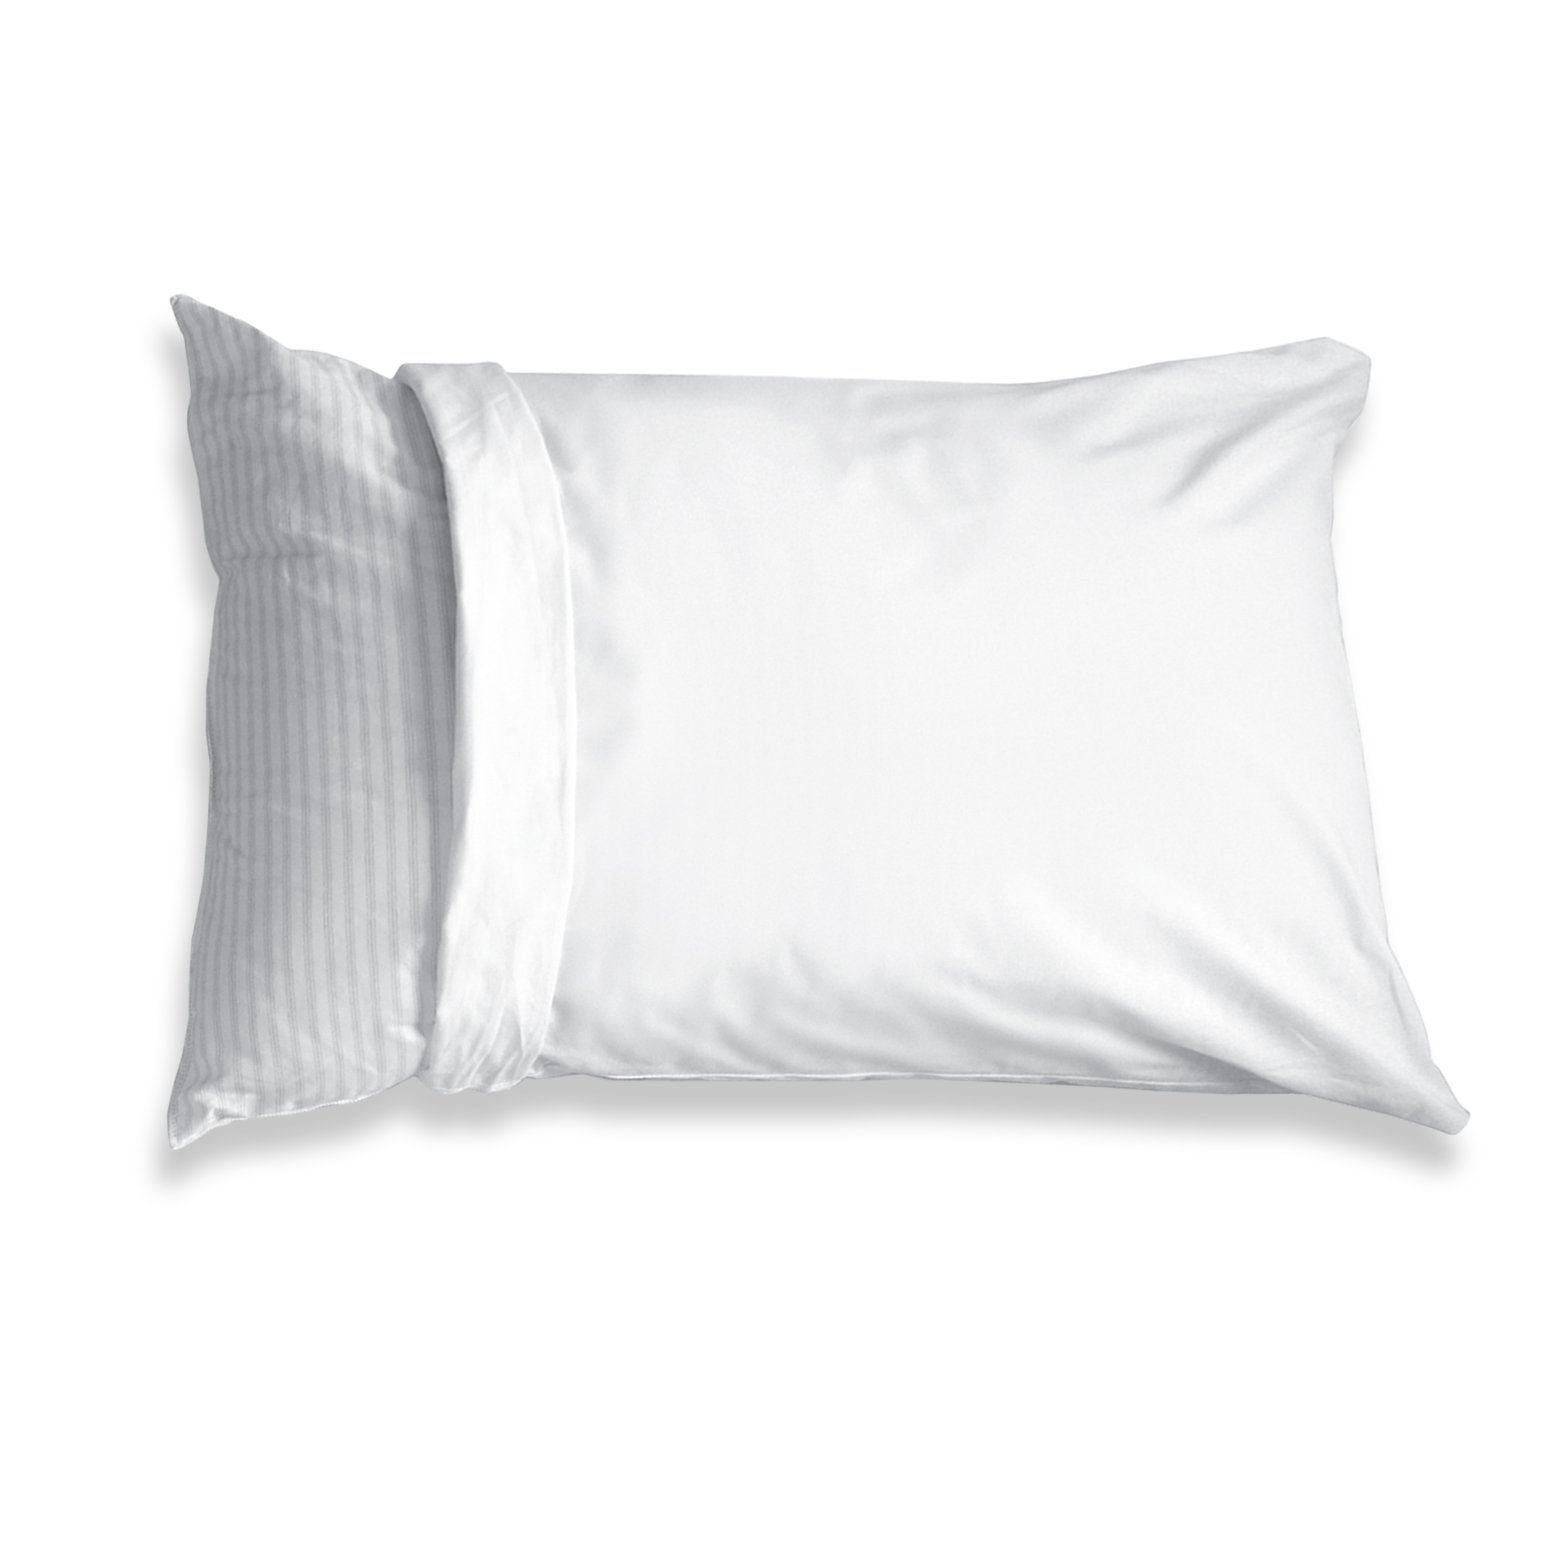 Levinsohn Fresh Ideas 100% Cotton Teflon Coated Pillow Protector Waterproof and Stain Resistant 2 Pack Standard, White